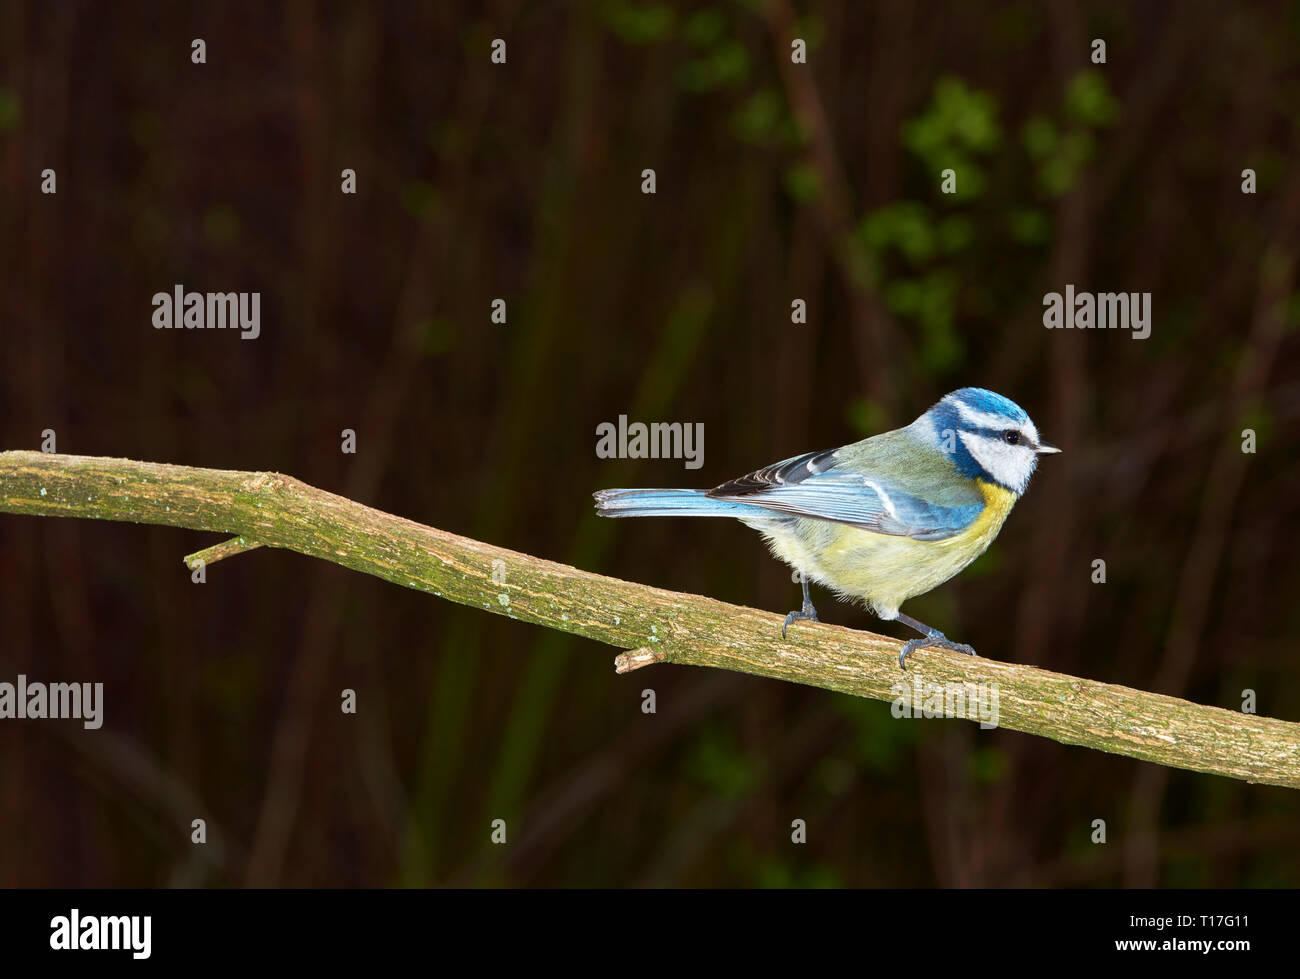 Blaumeise - Stock Image